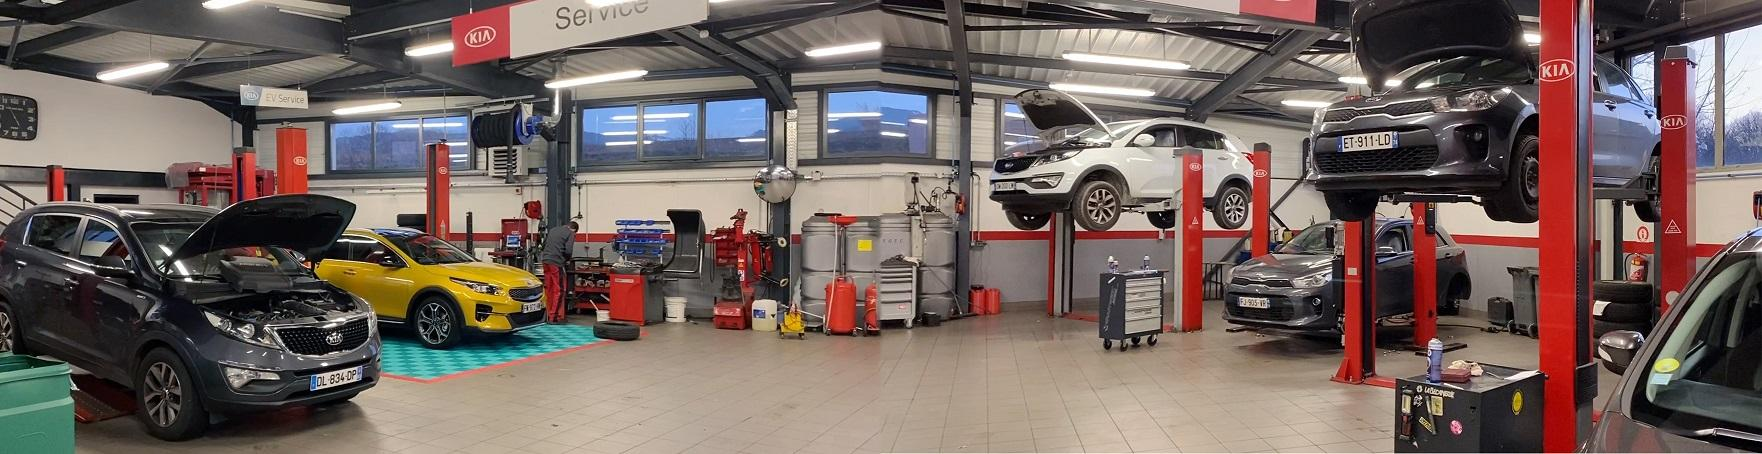 Jacquet Automobiles - Garage Kia, l'ultime concessionnaire chablaisien continue son ascension